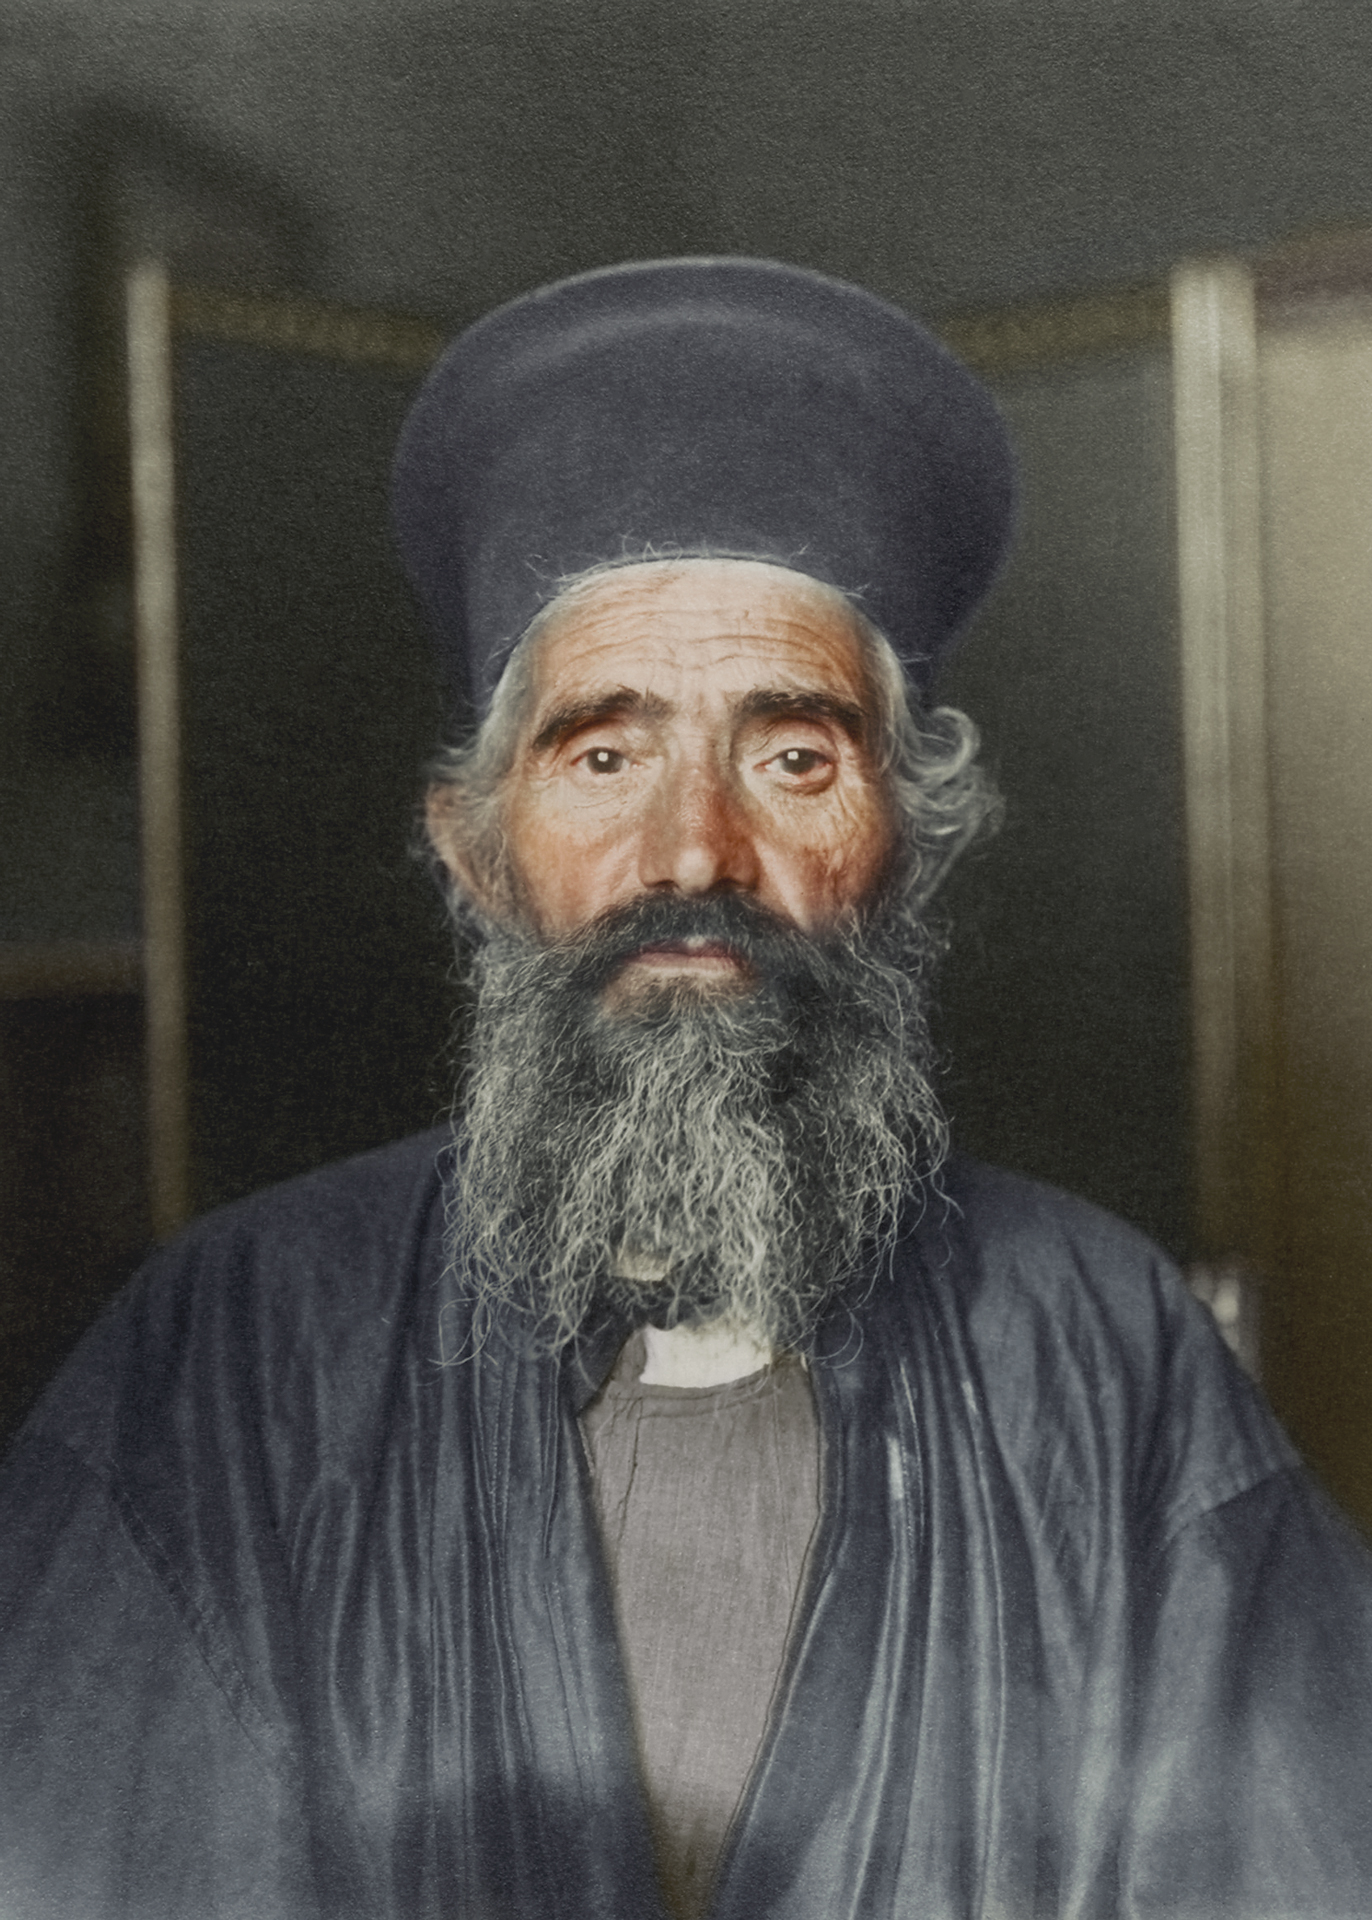 "c. 1910 ""Rev. Joseph Vasilon, Greek-Orthodox priest."" The vestments of the Greek Orthodox church have remained largely unchanged. In this photograph, the priest wears an anteri, an ankle length cassock (from the Turkish quzzak, from which the term 'Cossack' also derives) worn by all clergymen over which an amaniko, a type of cassock vest is sometimes worn, over which the black outer cassock known as a exorason is worn. The stiff cylindrical hat is called a kalimavkion worn during services."